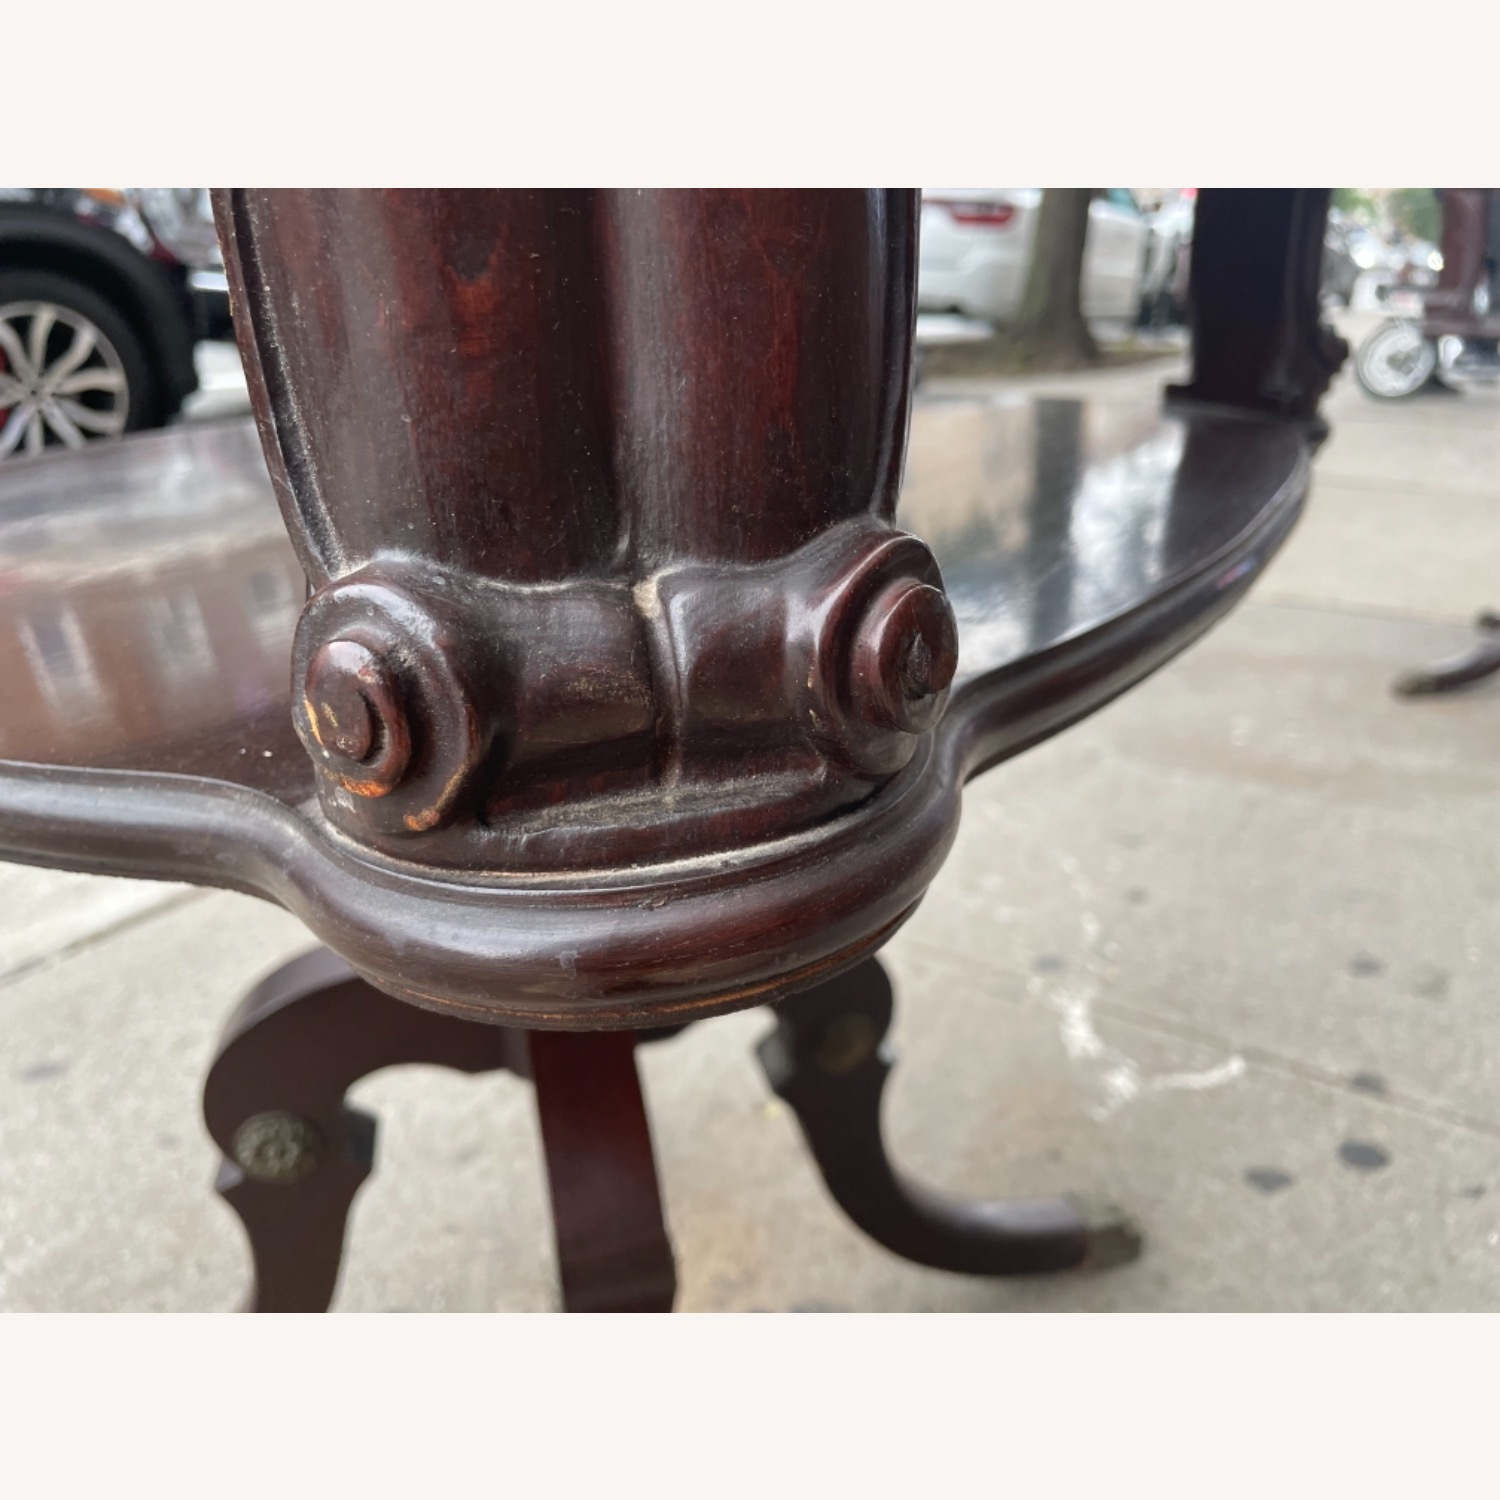 Adams Always 1930s Decorative Leather Top Table - image-9